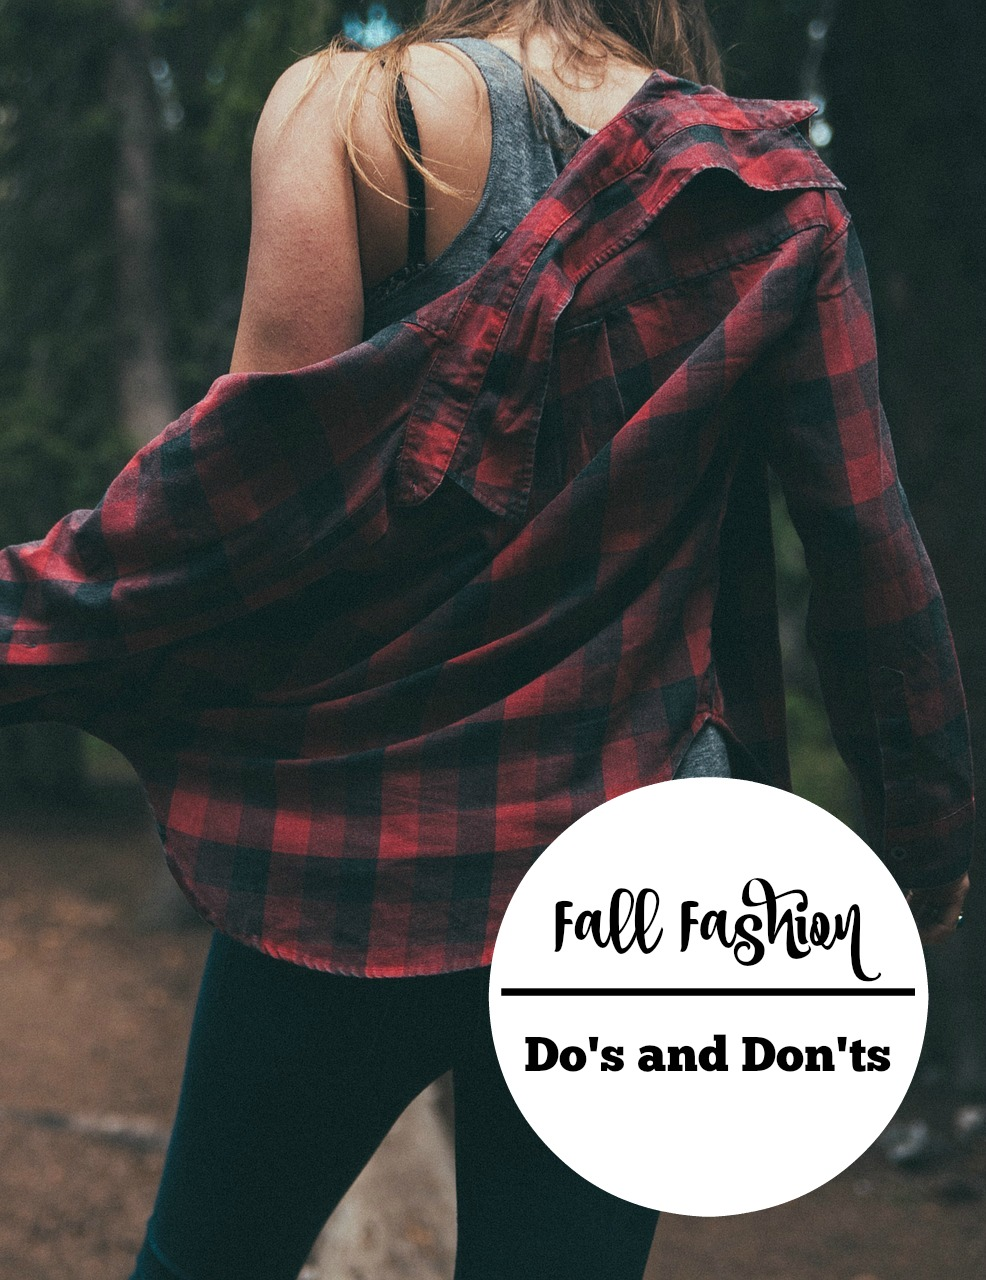 Keep your personal style on point and totally trendy this season with our easy list of fall fashion do's and don'ts!